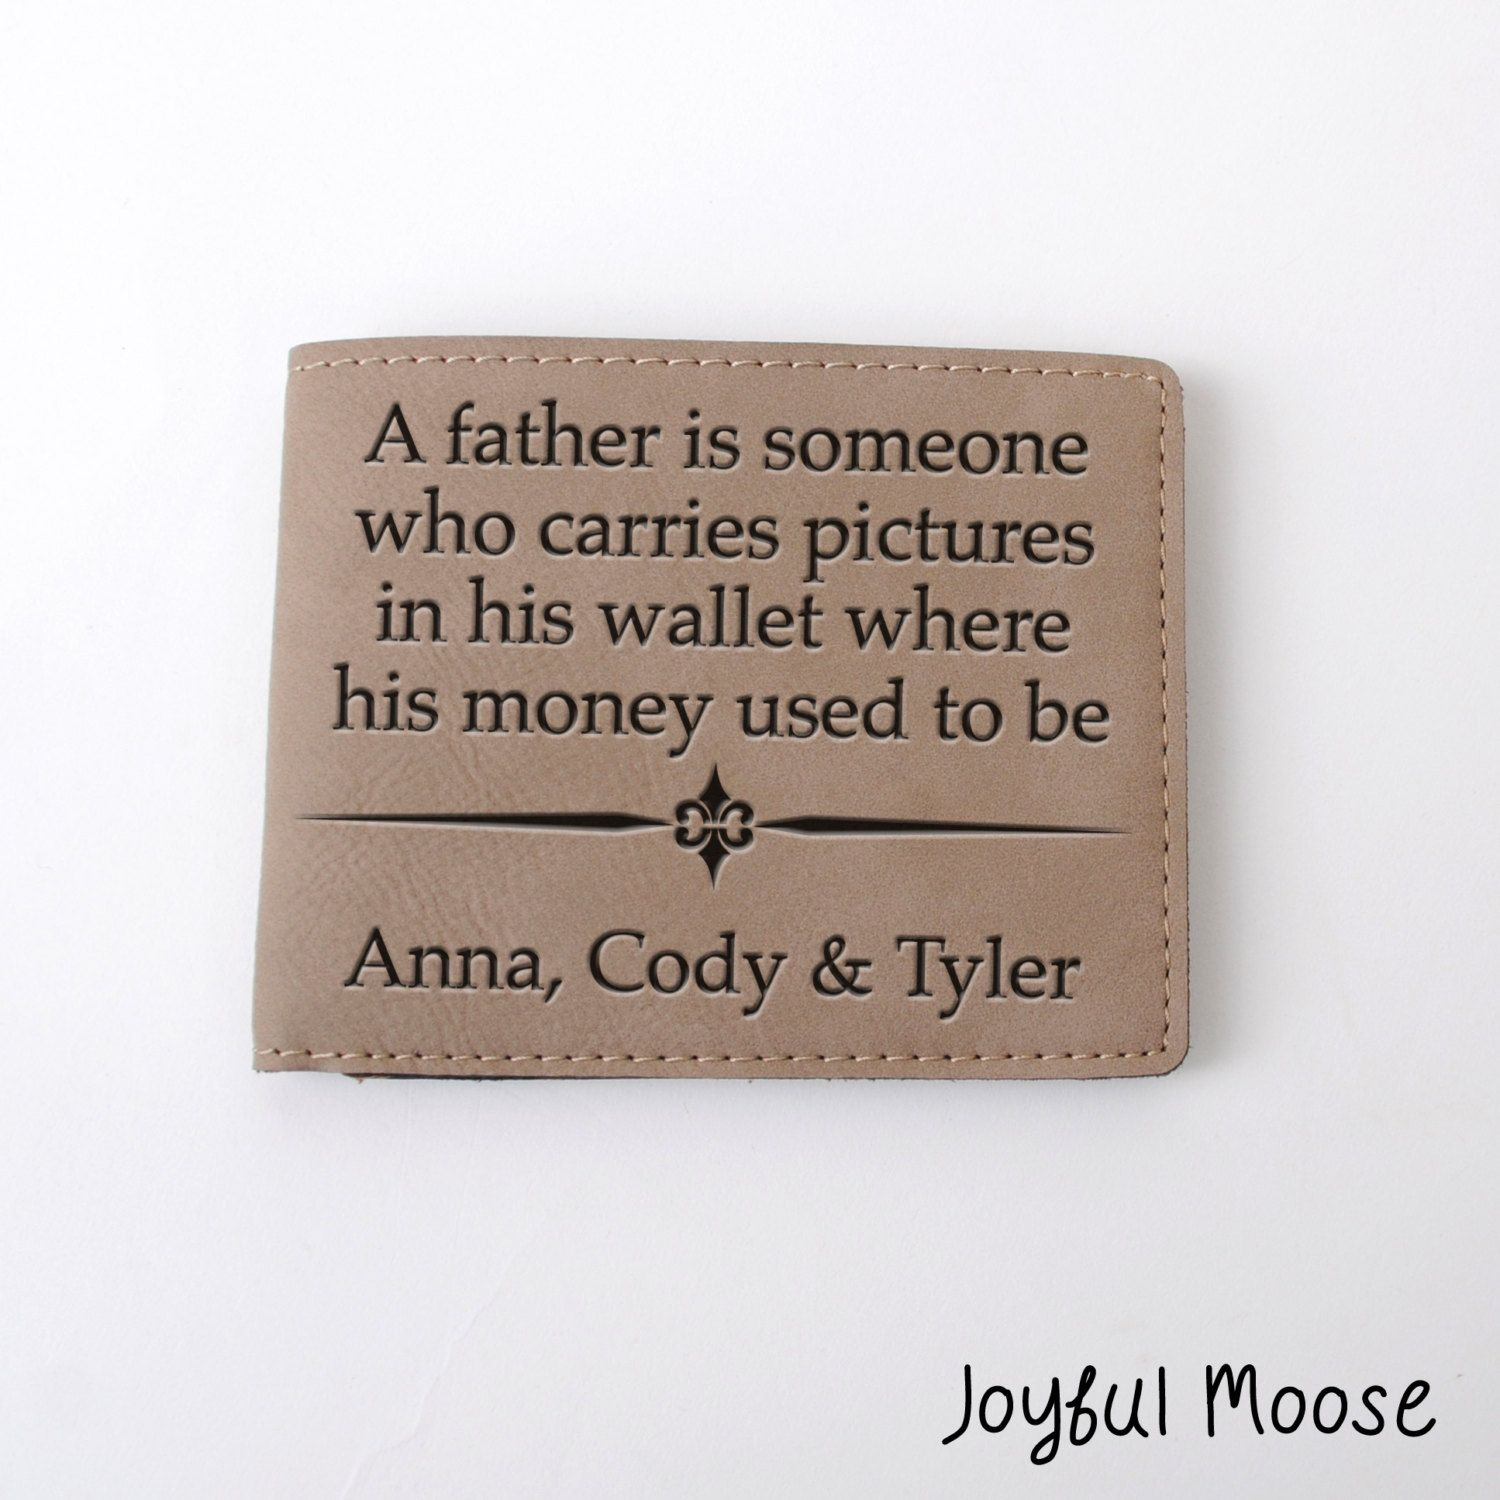 6665462bc0ee New to JoyfulMoose on Etsy  Leather Wallet for Dad - Personalized Father s  Day Gift - Personalized Mens Wallet Kids Names (19.00 USD)